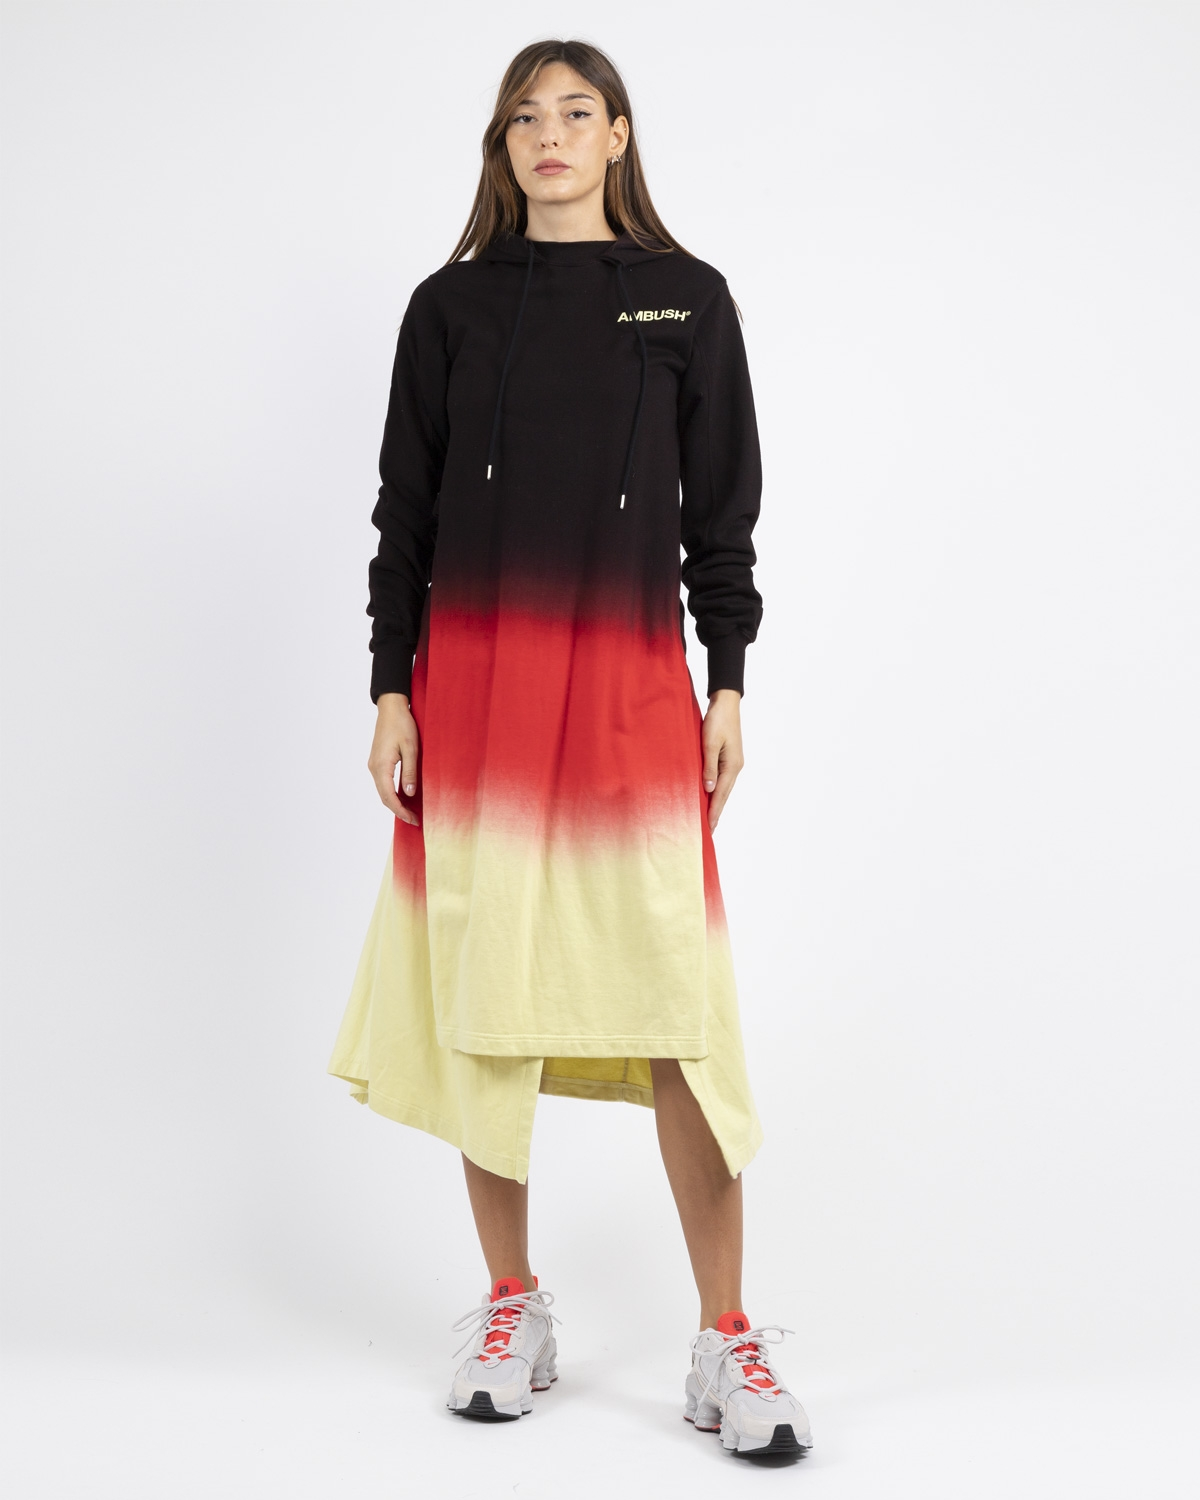 Ambush tie dye hooded dress